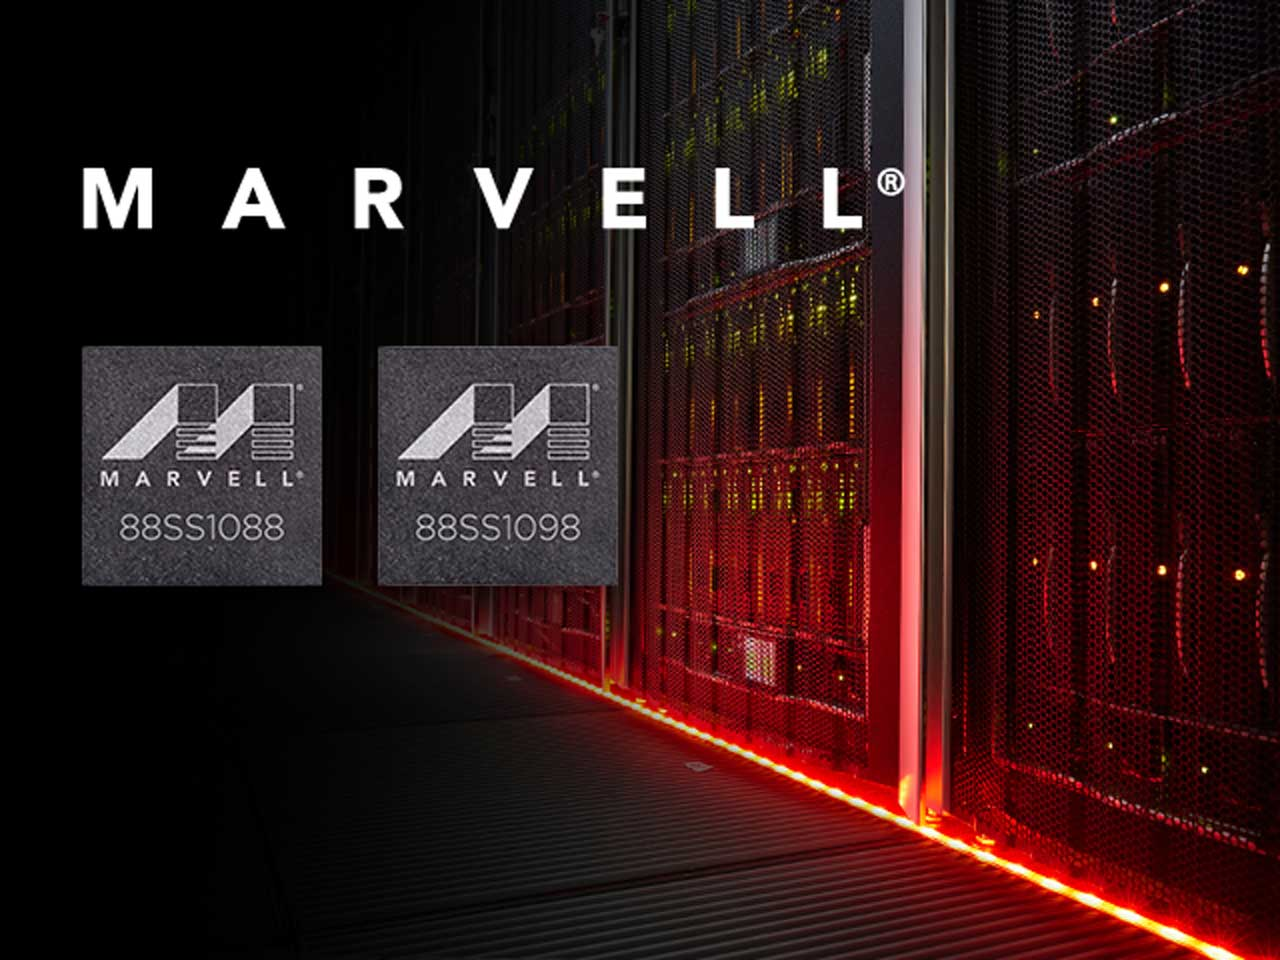 The Marvell 88SS1098 and 88SS1088 NVMe SSD controllers are powered by Marvell's fourth generation of NANDEdge™ LDPC error correction technology, which provides support for the latest 3D NAND TLC and QLC technologies, extending SSD lifetime while maintaining best-in-class latency and performance consistency.